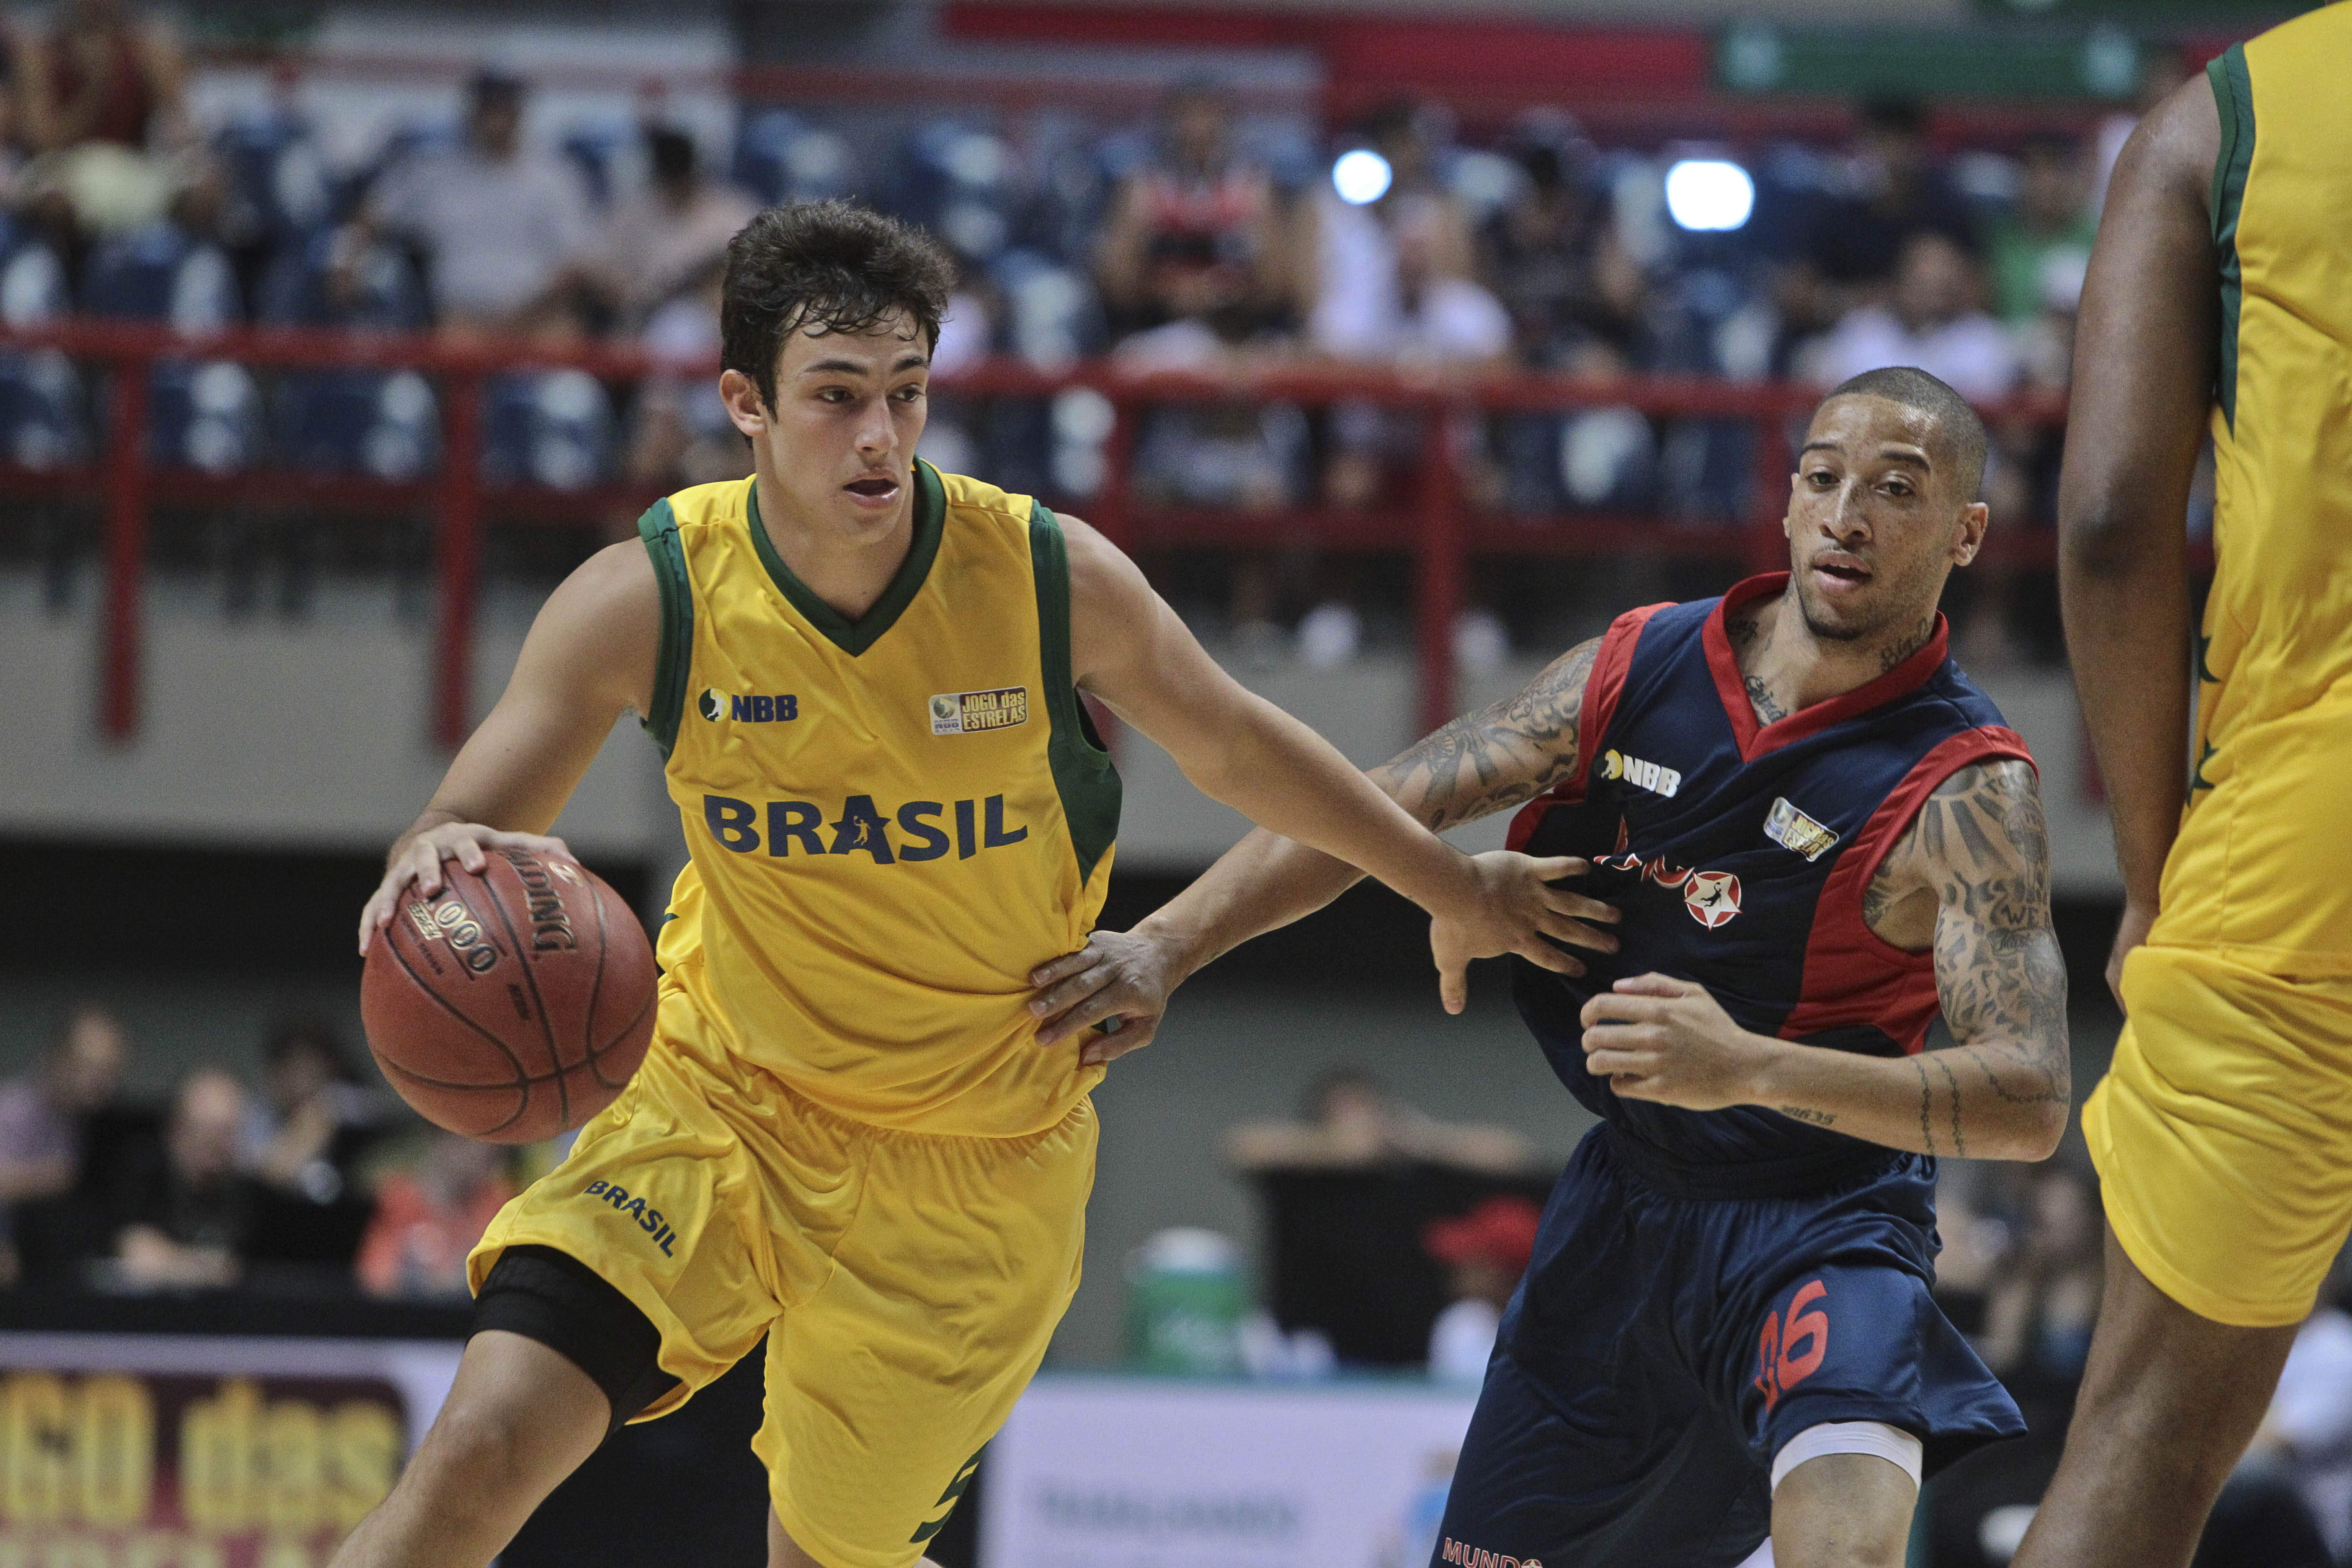 Ricardo Fischer, do NBB Brasil, e Kenny Dawkins, do NBB Mundo